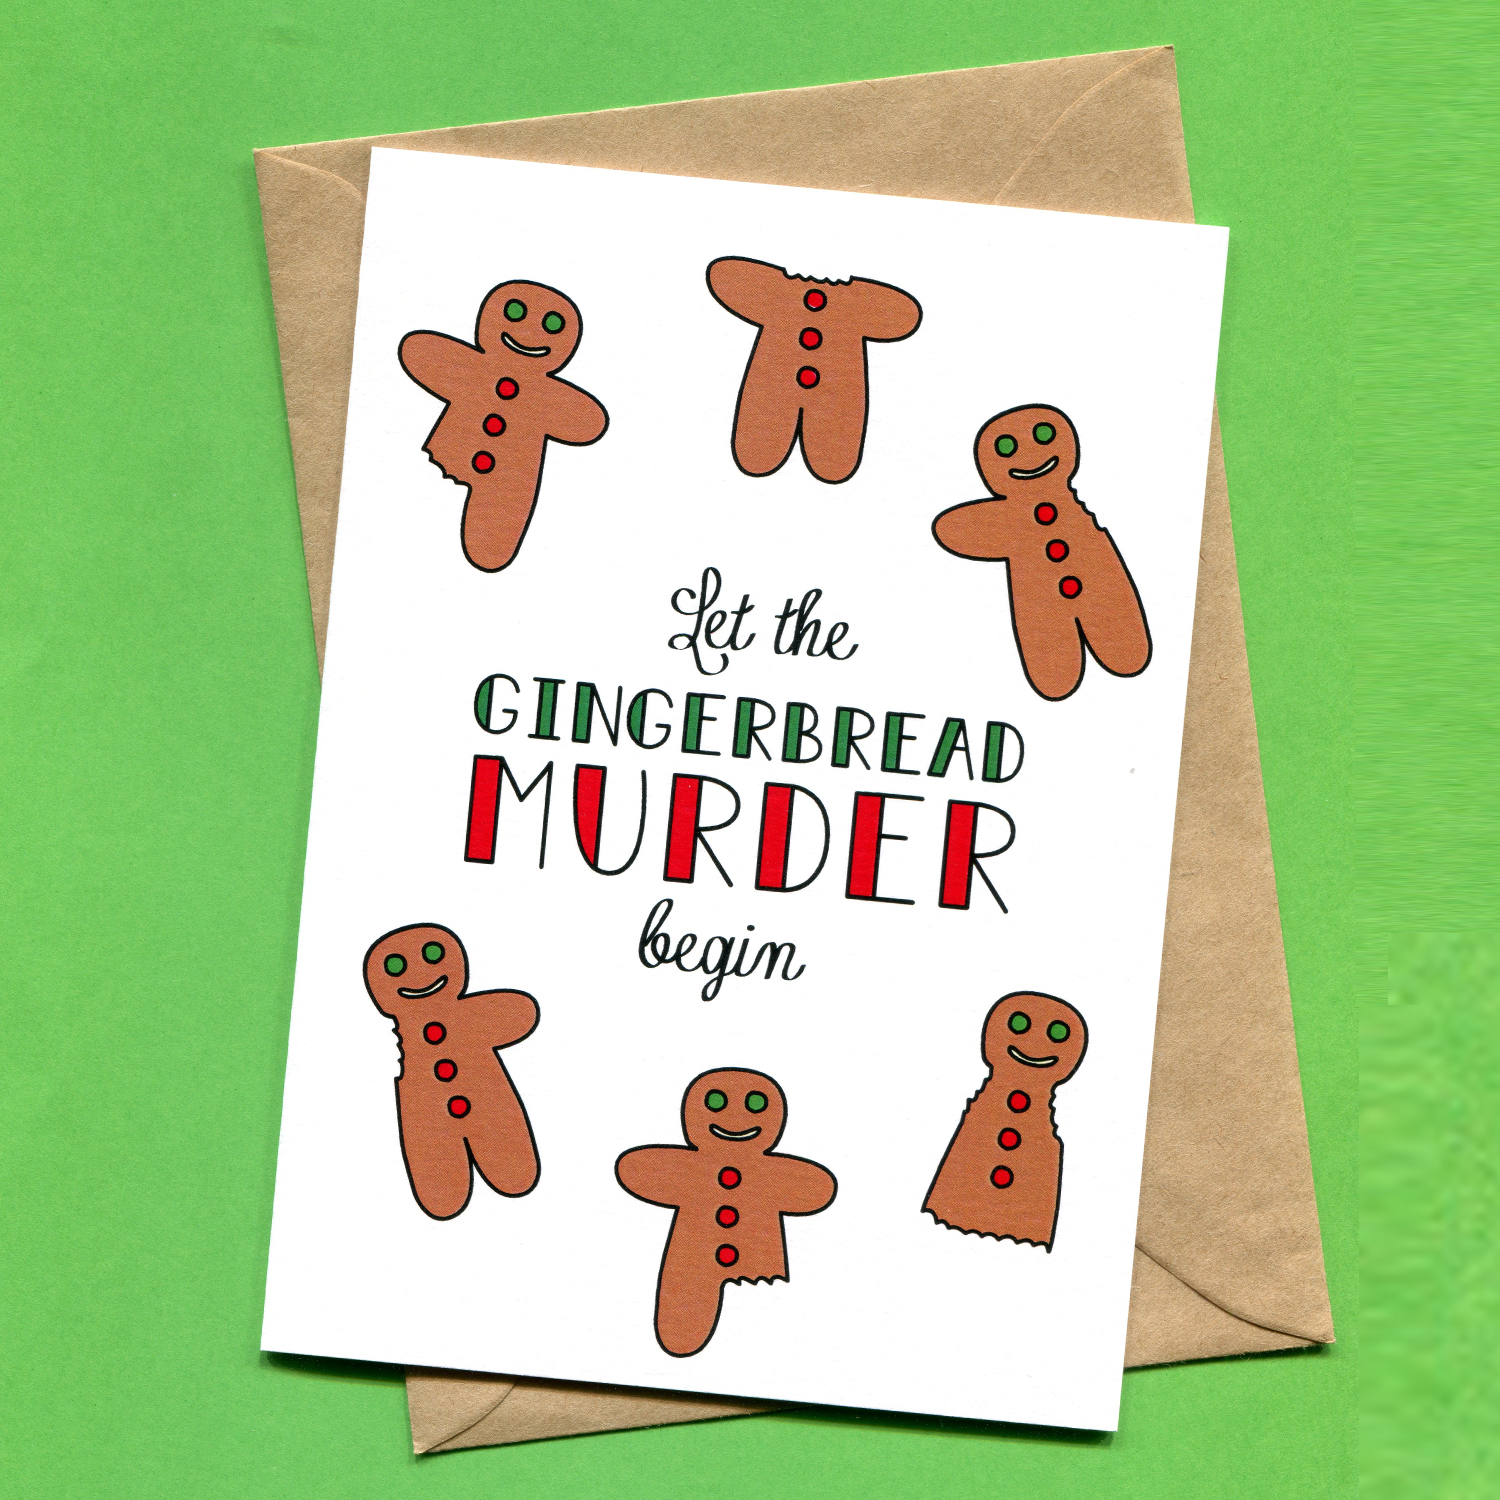 Catalogue_Things by Bean Let the Gingerbread Murder Begin Christmas Card.jpg